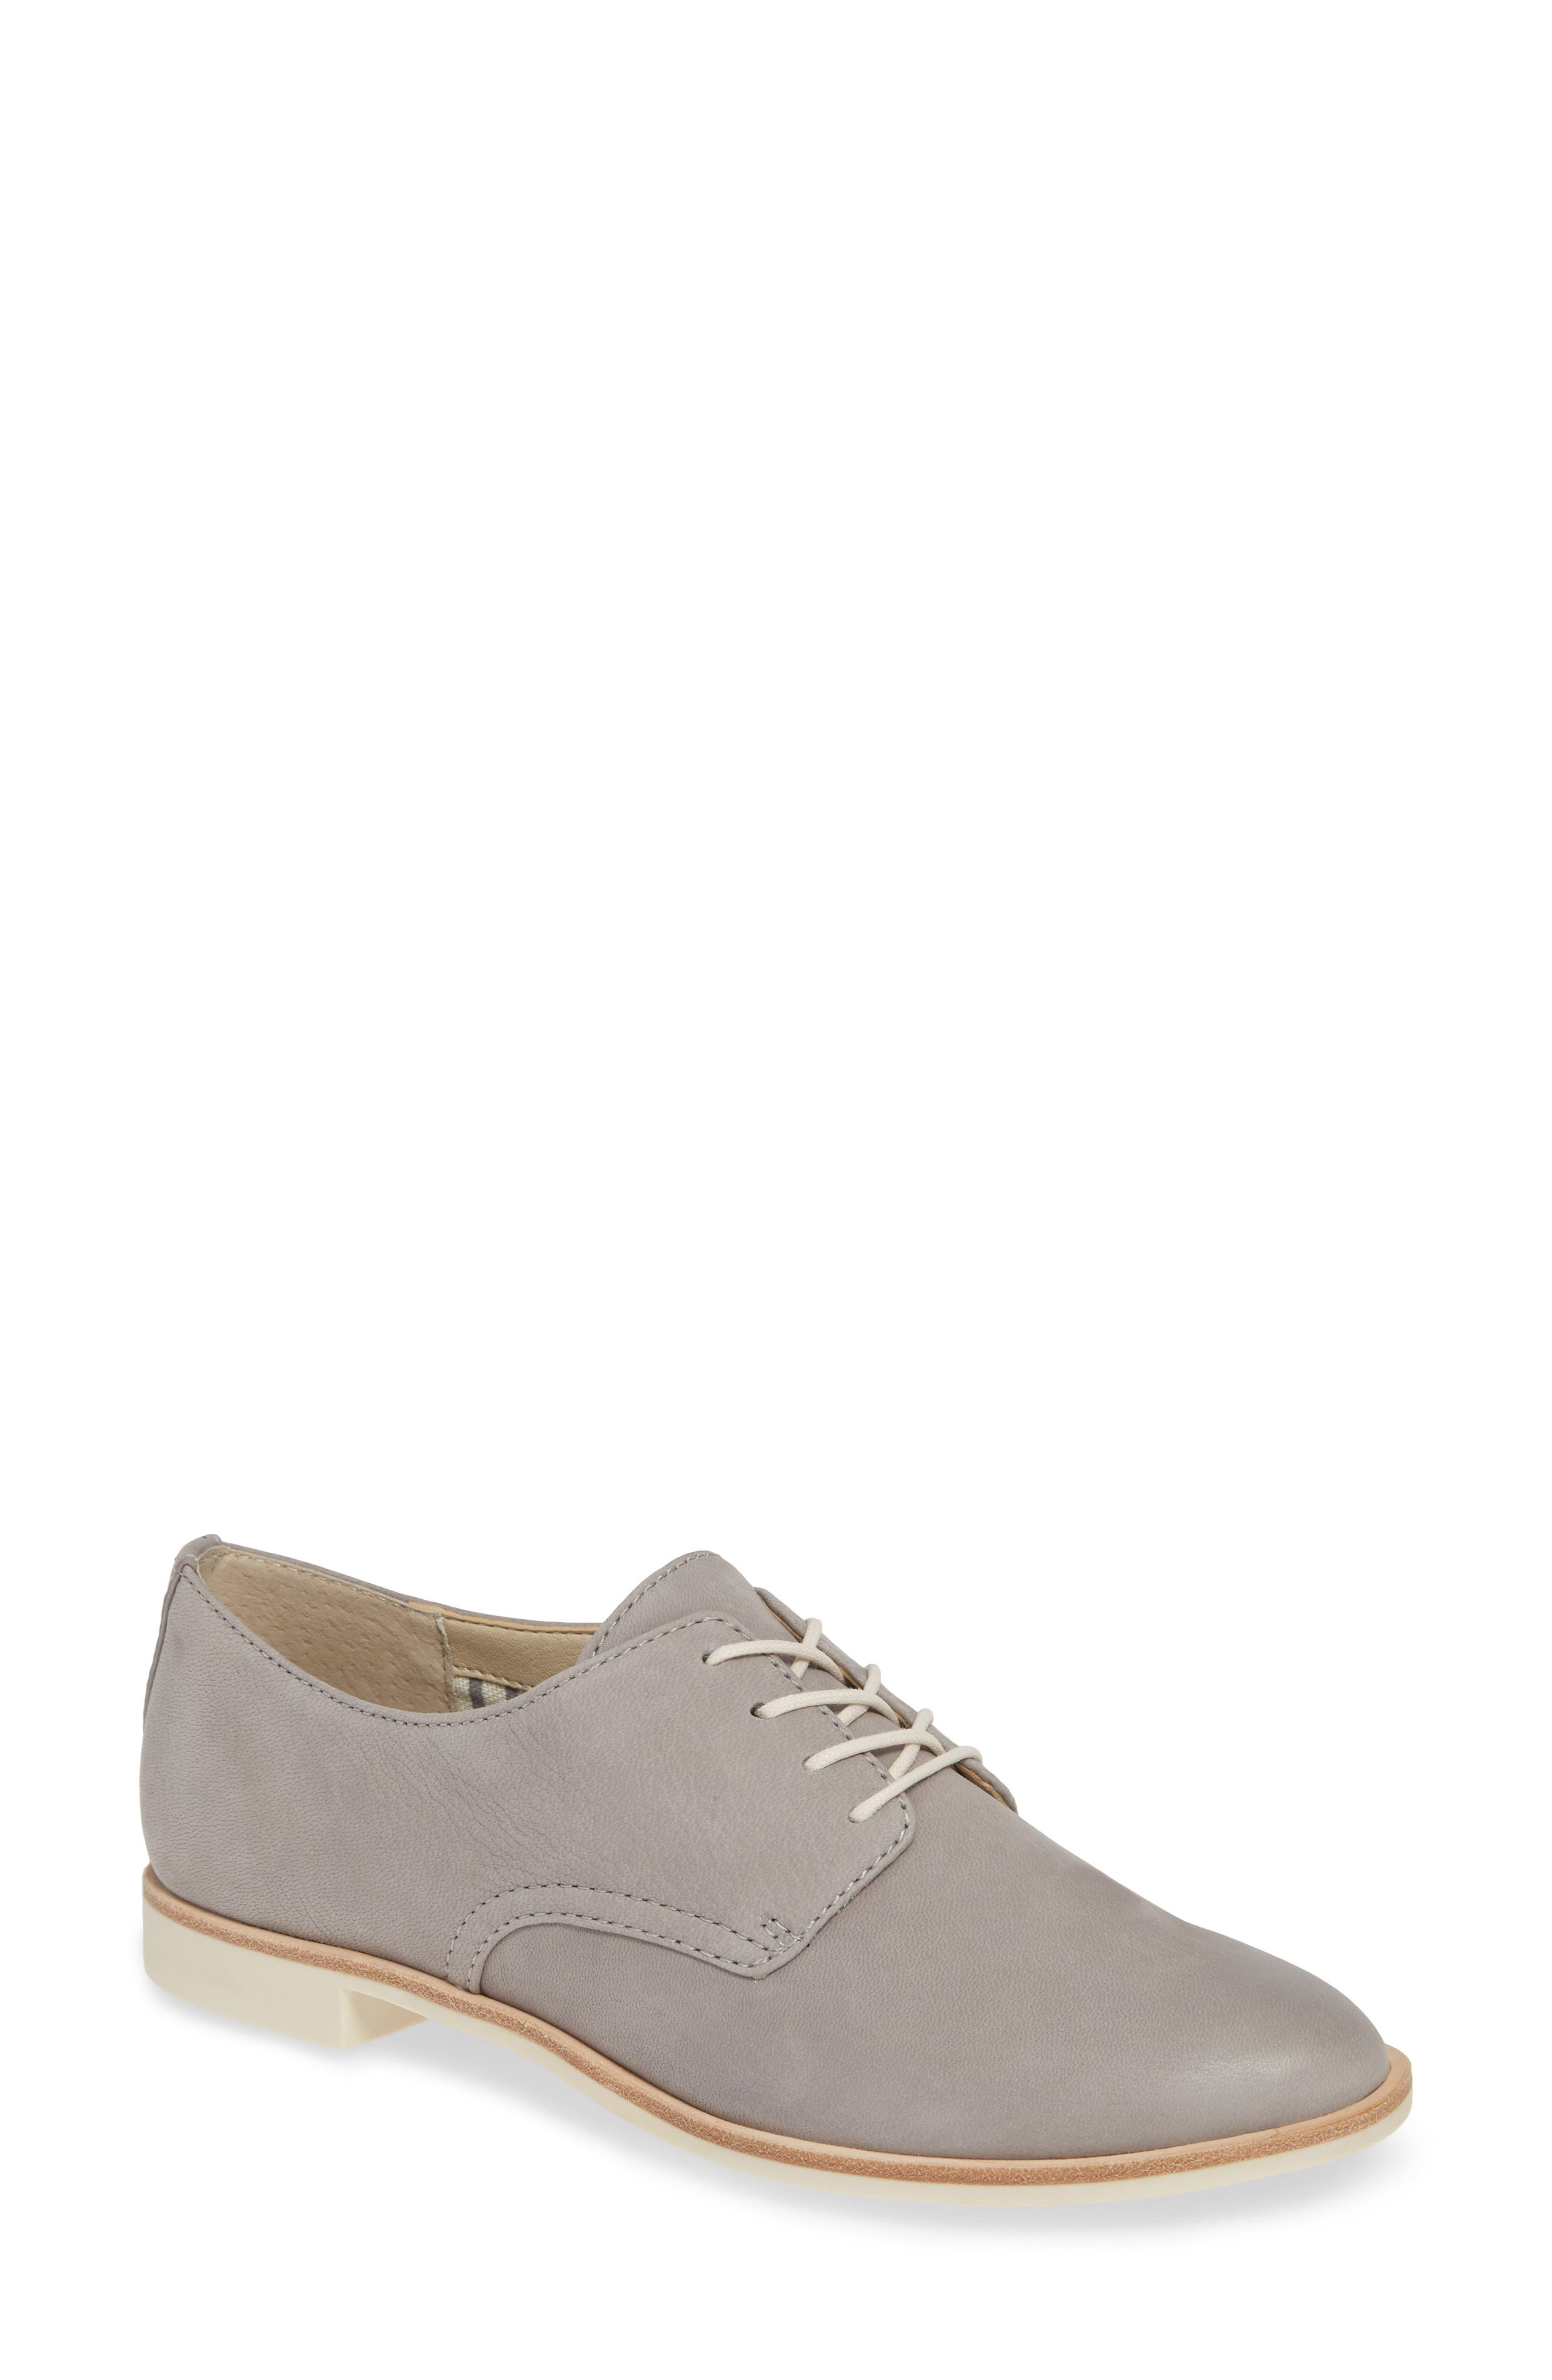 DOLCE VITA,                             Kyle Derby,                             Main thumbnail 1, color,                             GREY LEATHER